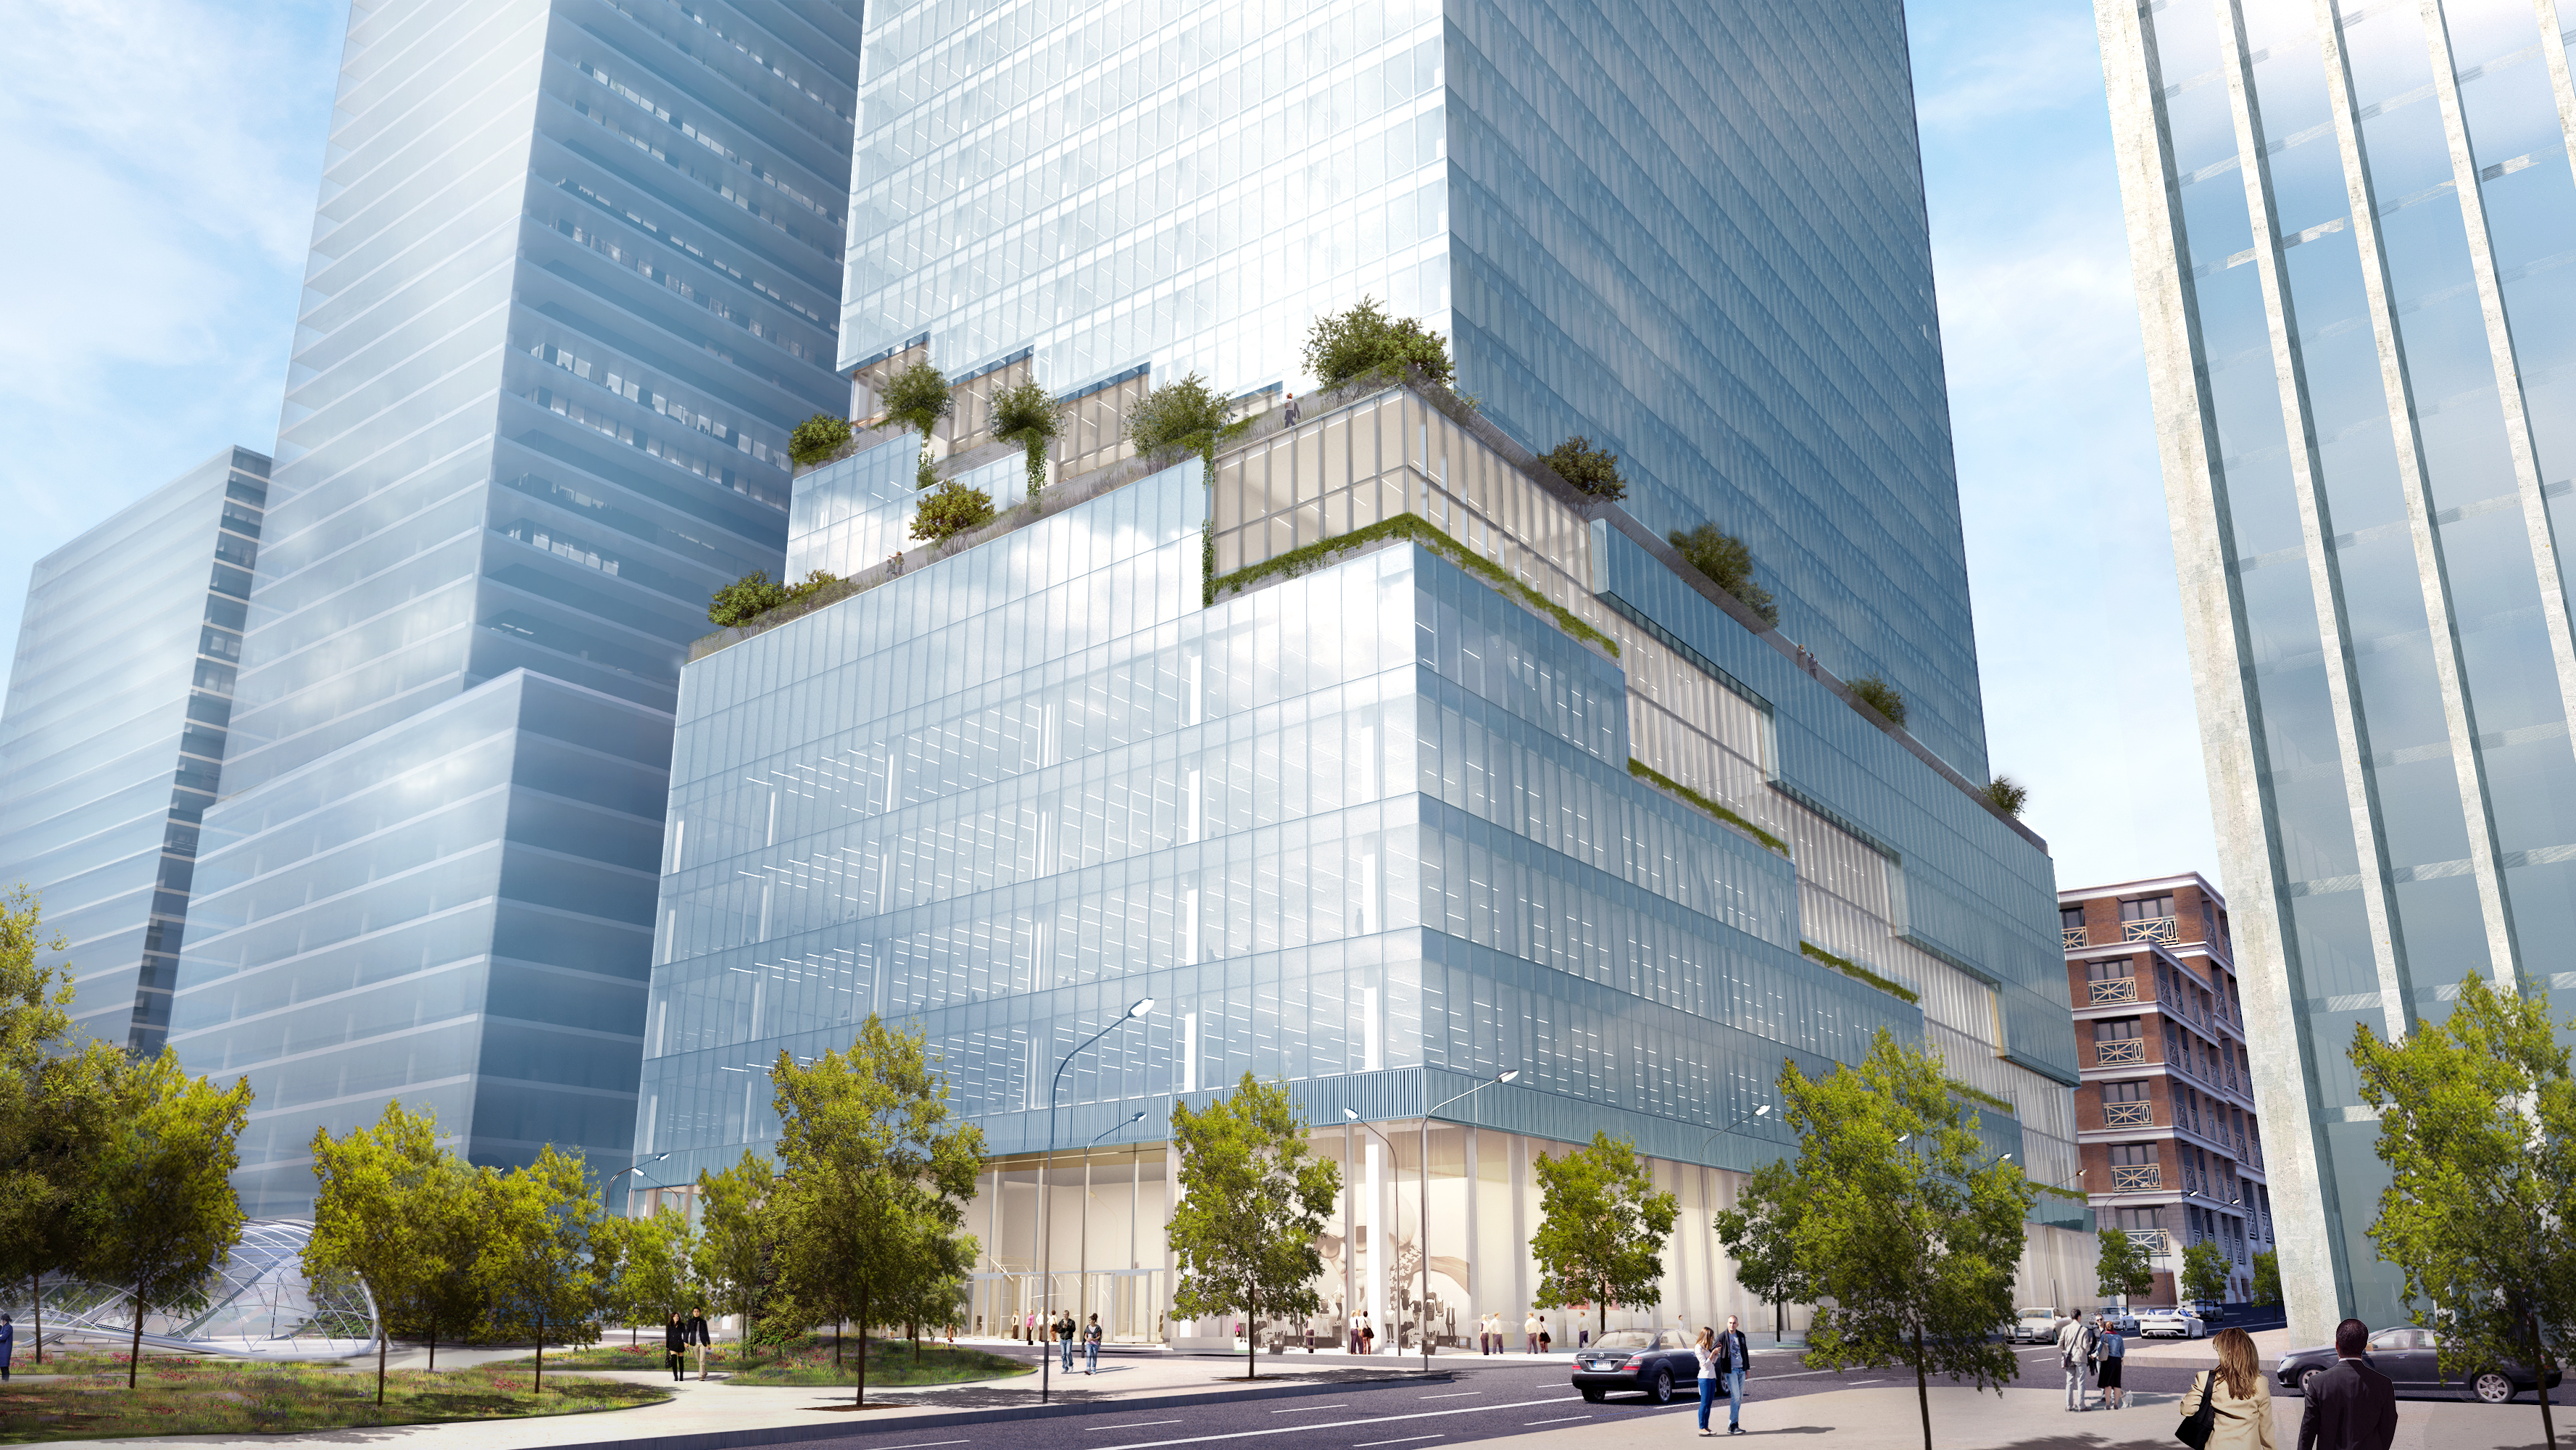 Hudson Yards New York: a guide to construction in the megaproject